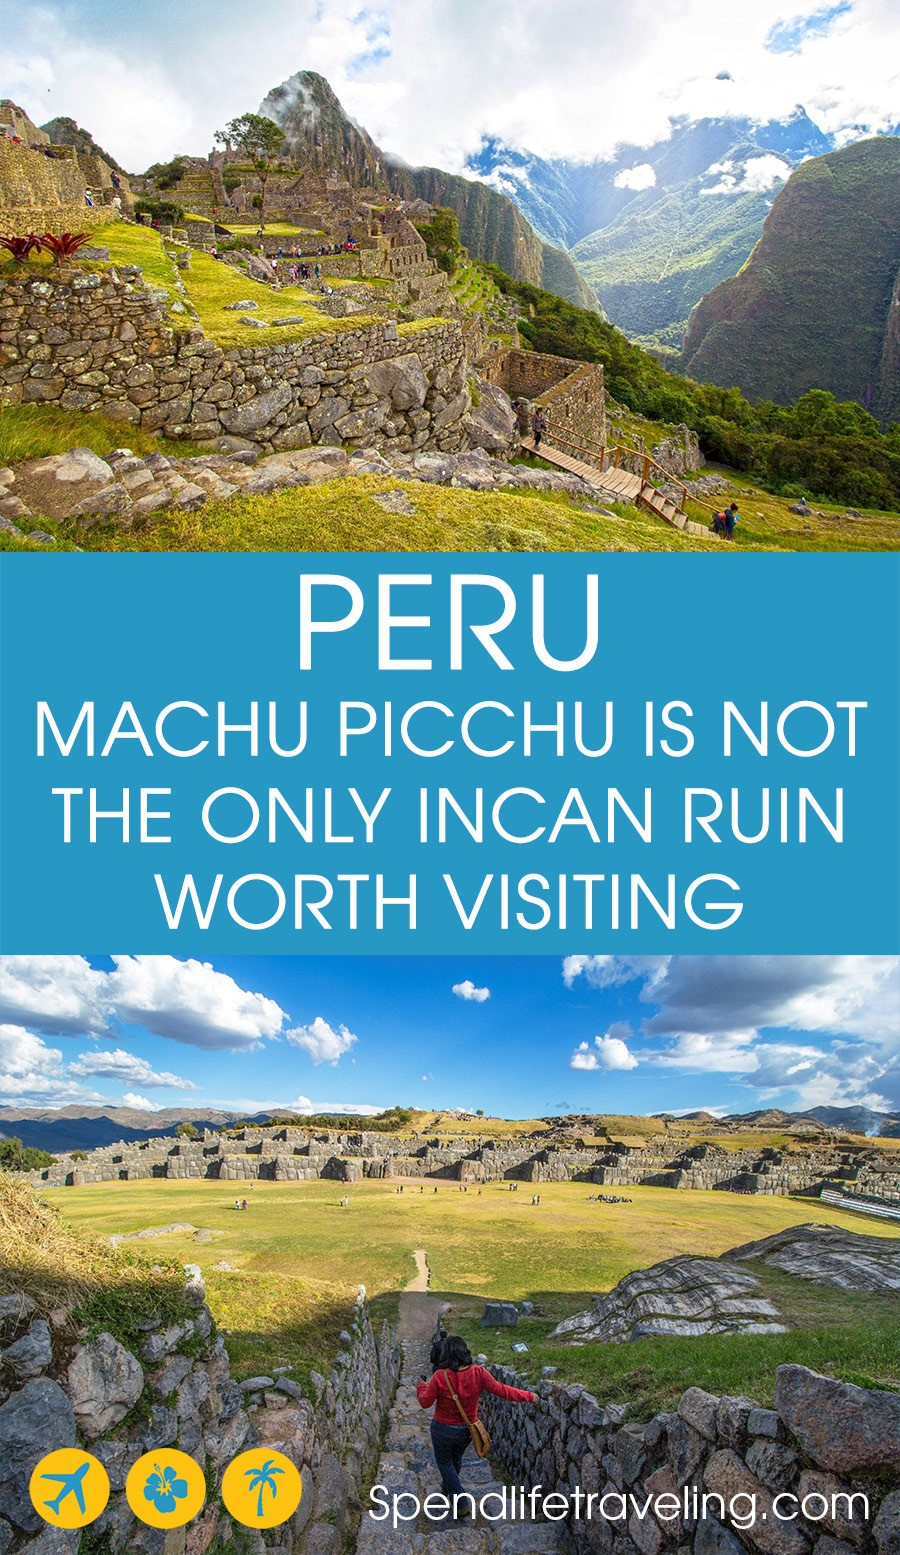 5 Must See Ruins in the Sacred Valley of Peru. Yes, Machu Picchu is incredible and a must-visit. But did you know this area offers several other impressive Incan ruins?